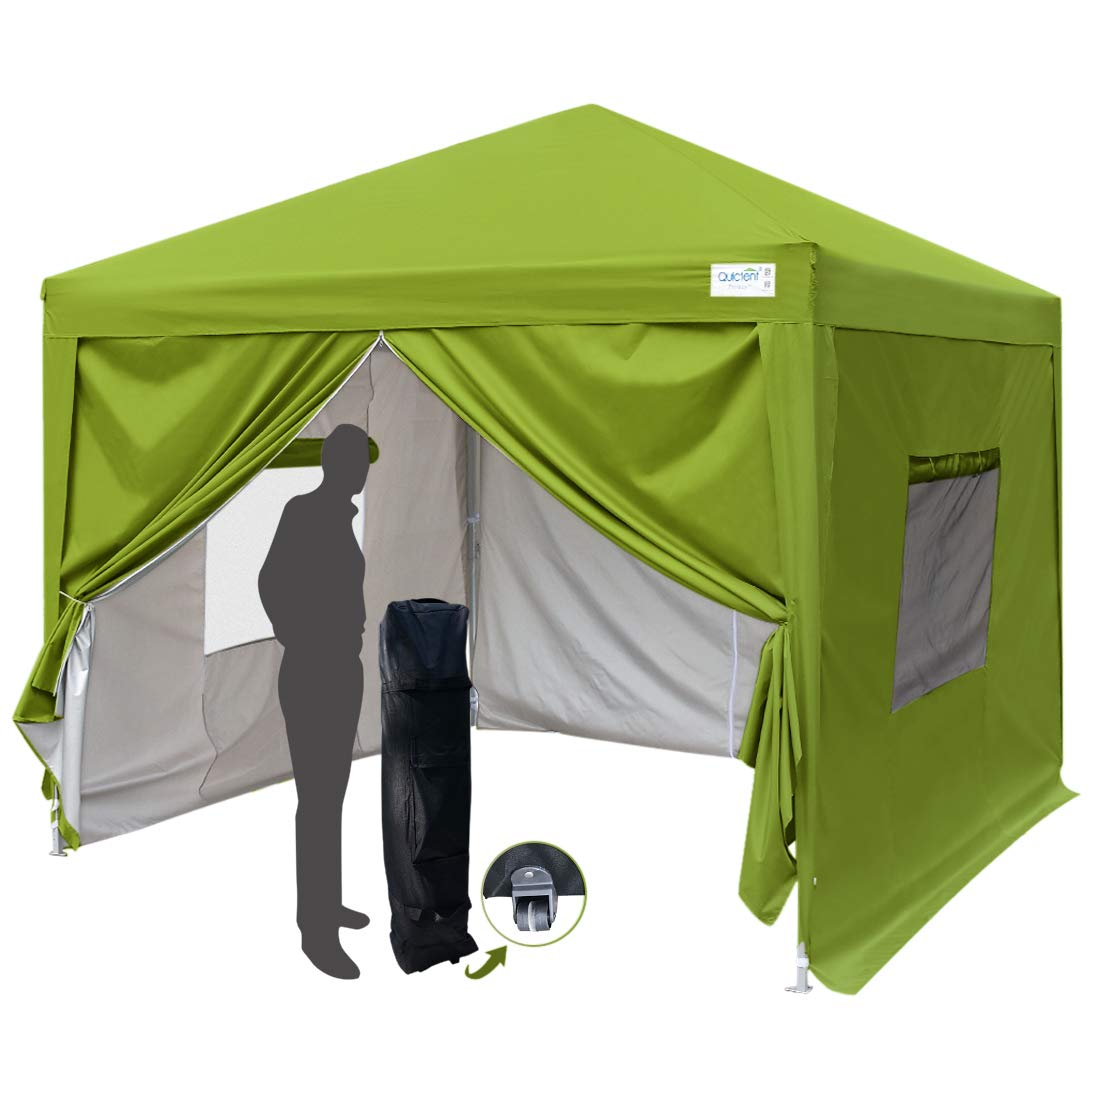 quictent privacy 10x10 ez pop up canopy tent party tent gazebo with mesh windows and sidewalls 100 waterproof 7 colors green